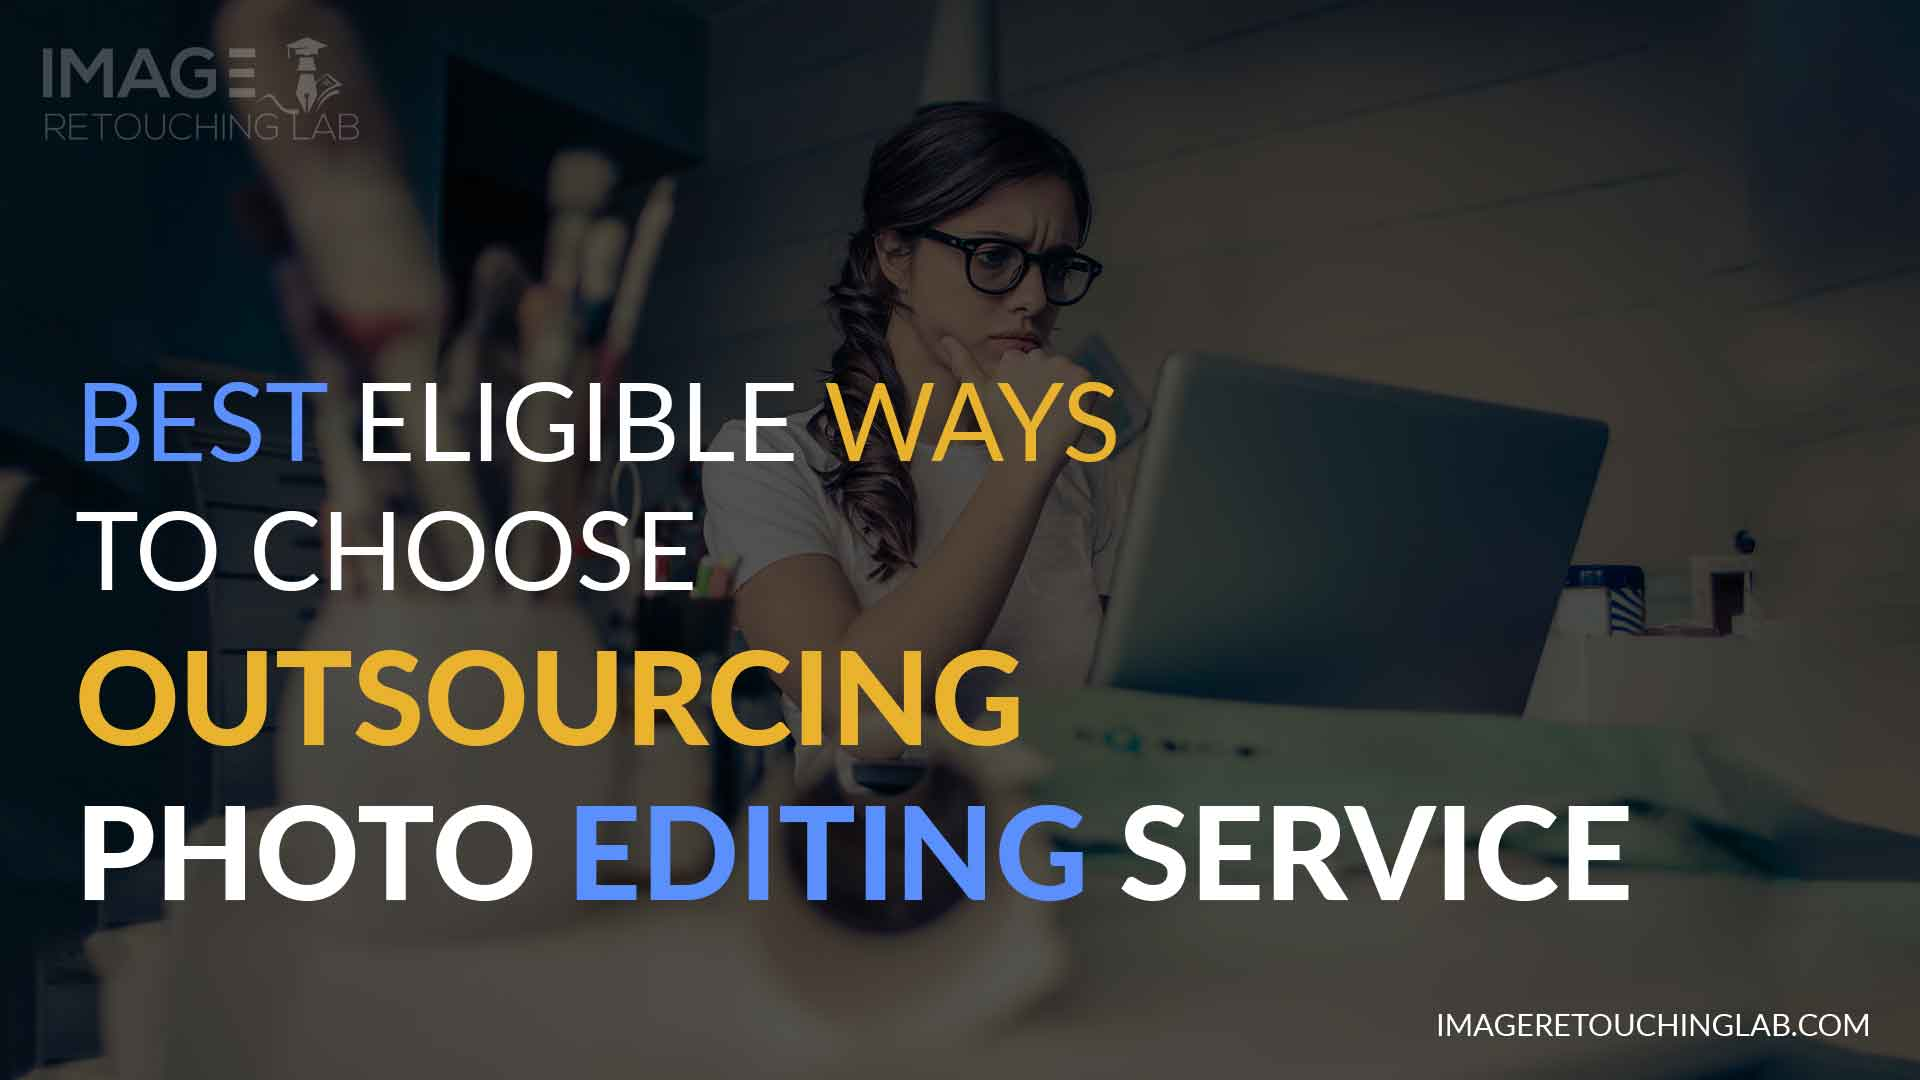 Best Eligible Ways to Choose Outsourcing Photo Editing Service